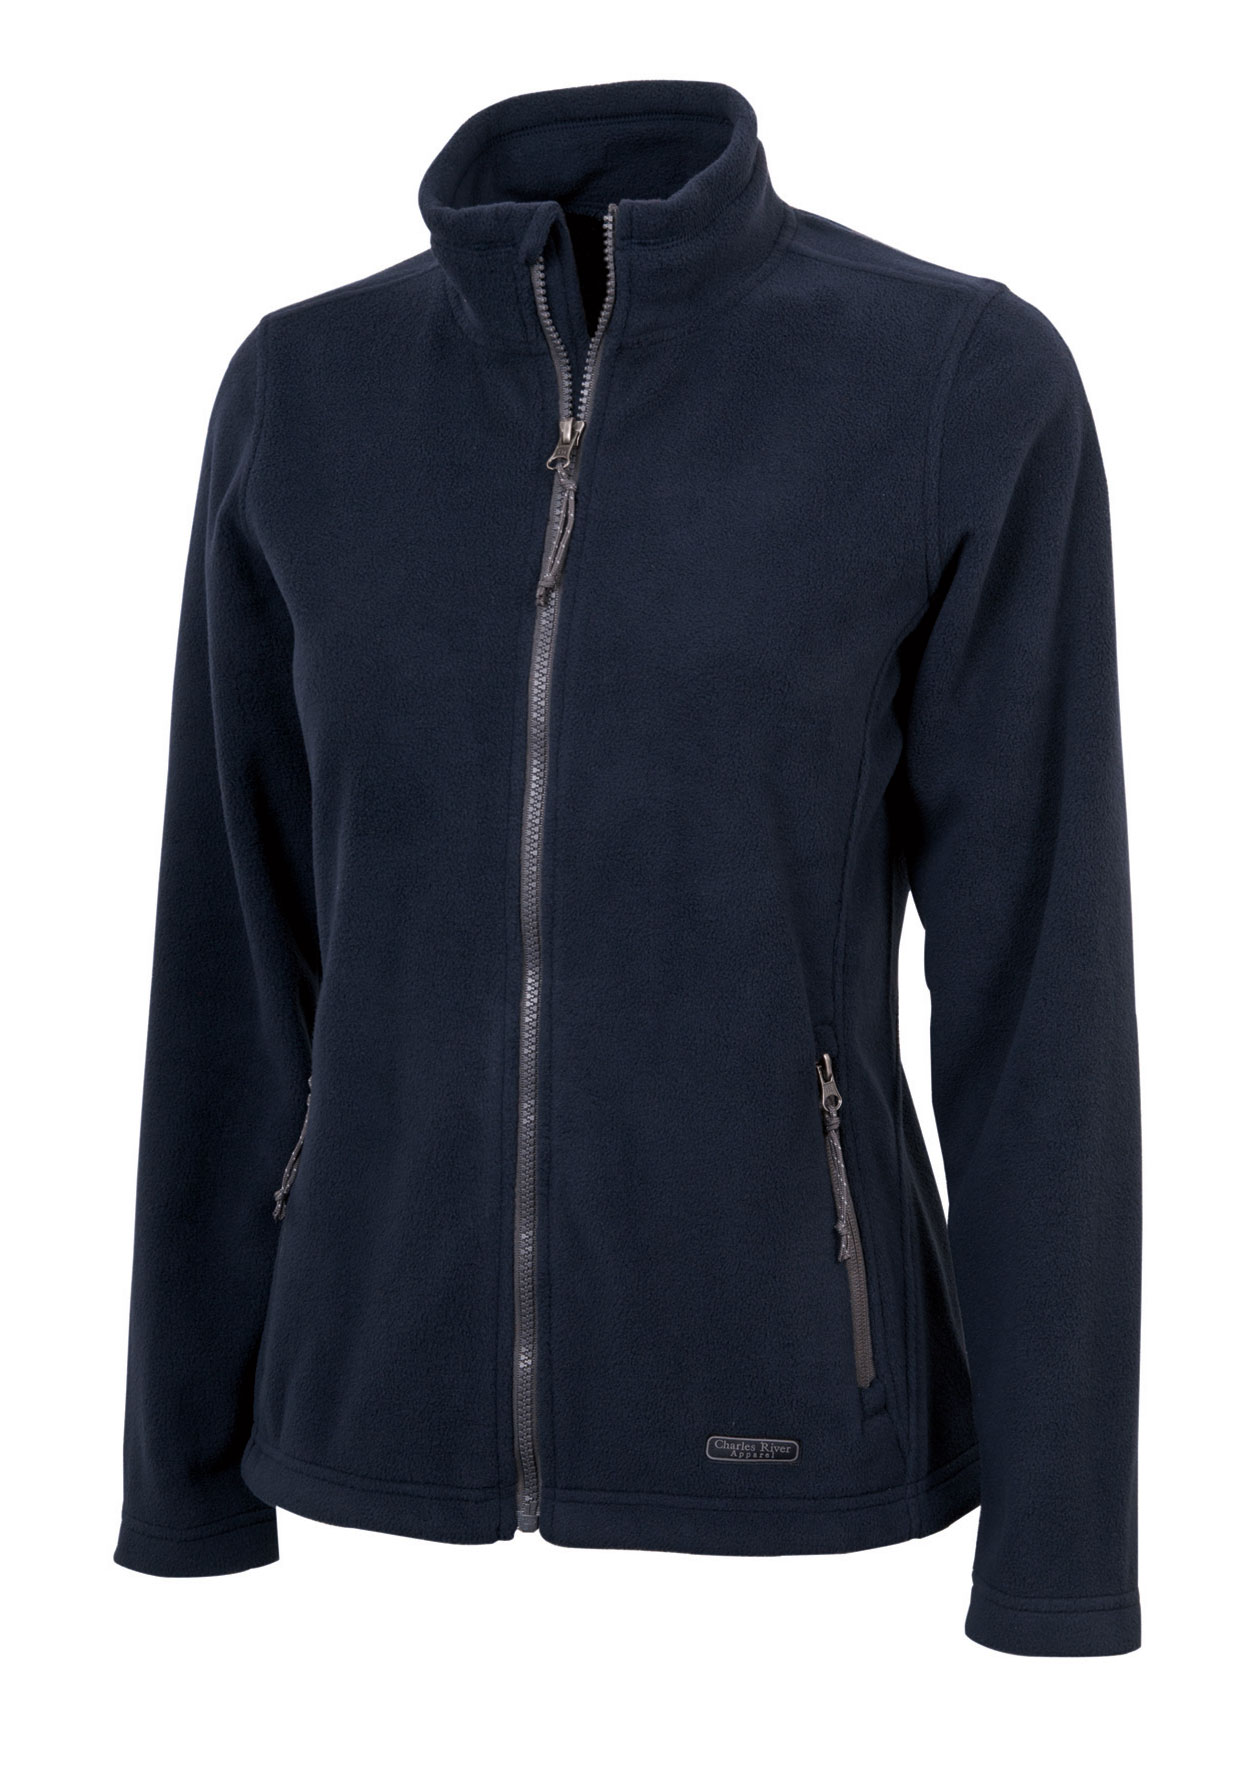 Womens Boundary Fleece Jacket  by Charles River Apparel